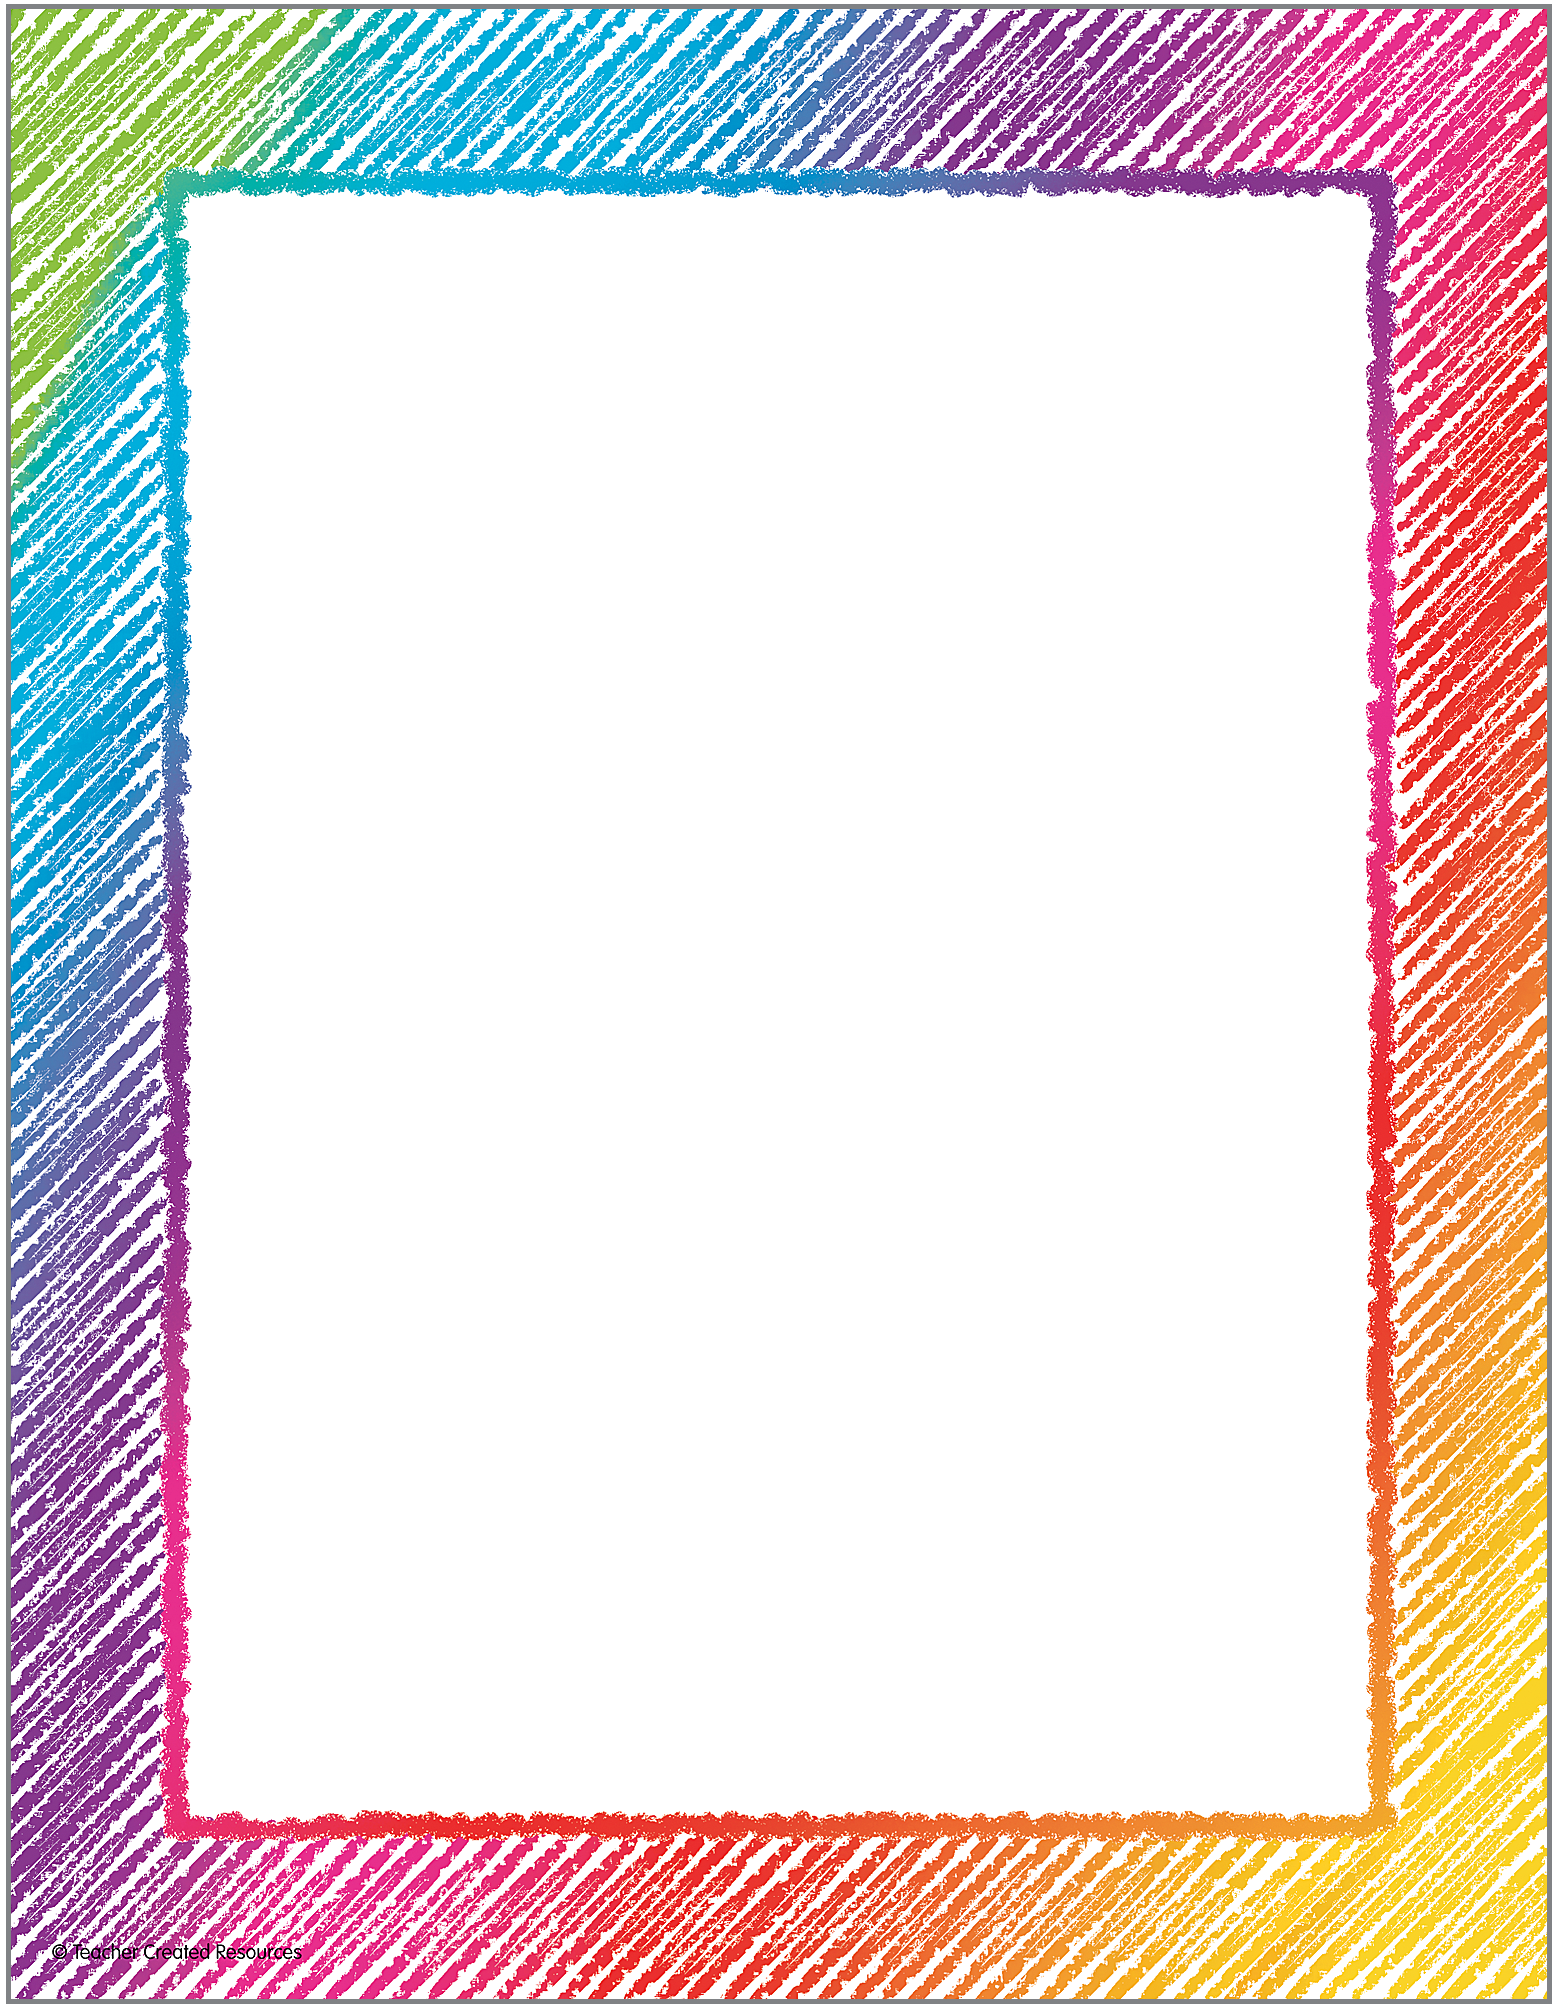 Colorful Scribble Computer Paper 8 1 2 X 11 Paper Coordinates With Your Favorite Designs 5 Colorful Borders Design Page Borders Design Frame Border Design